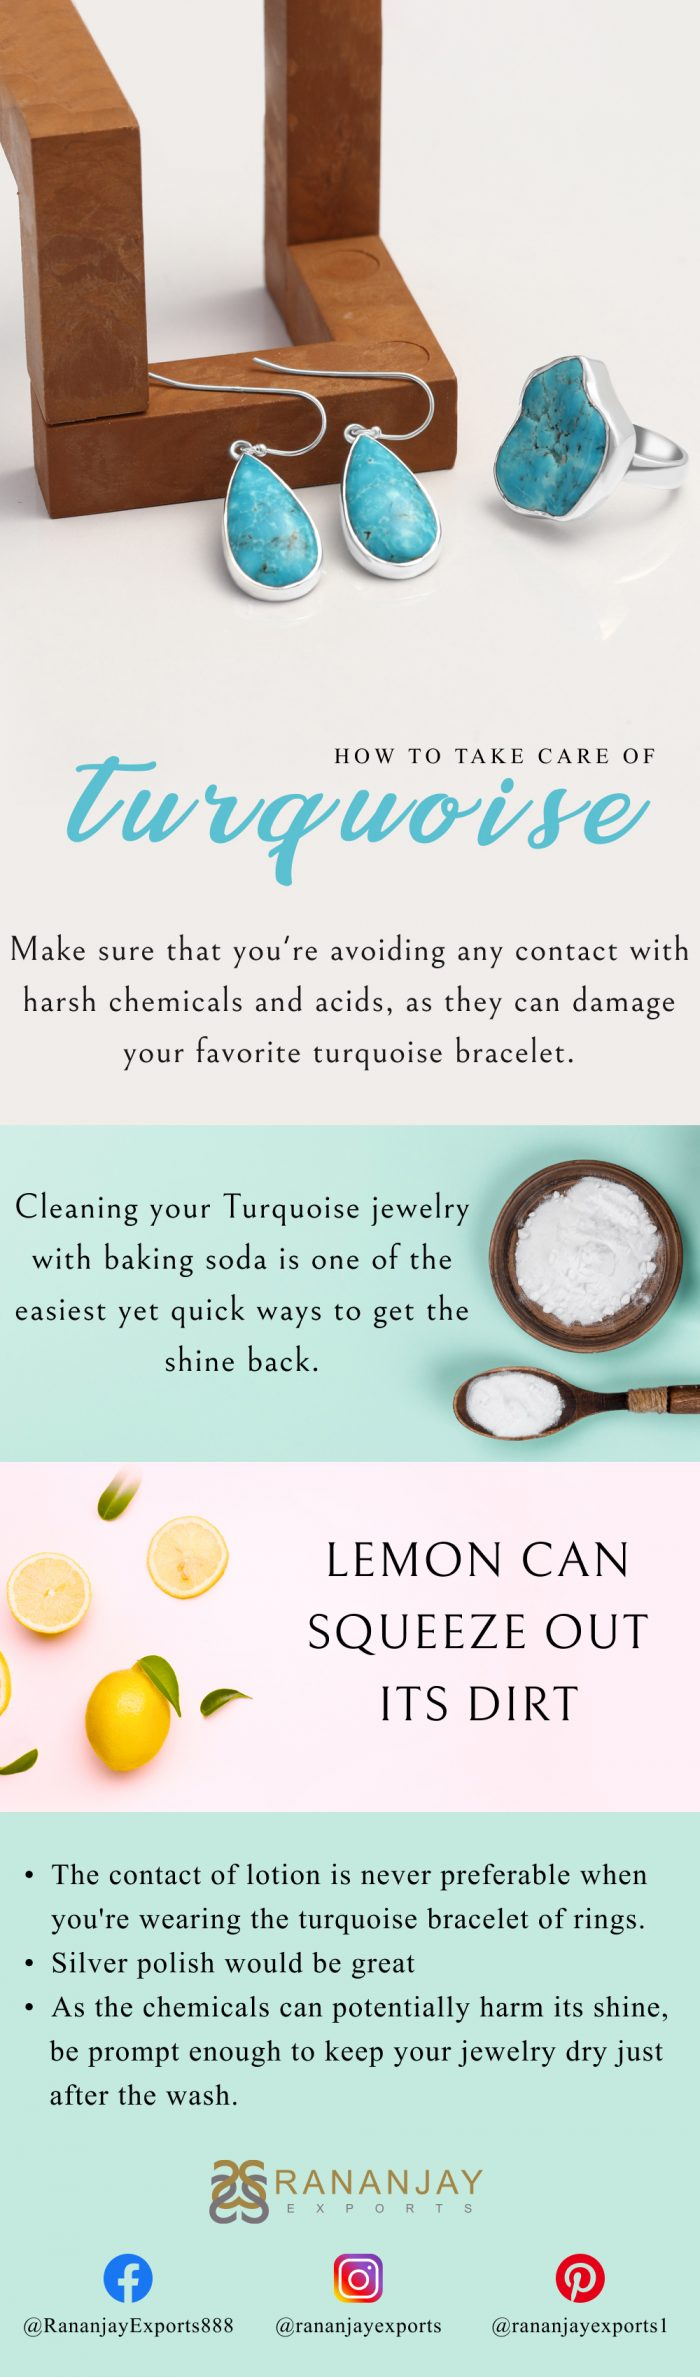 How To Take Care Of Turquoise